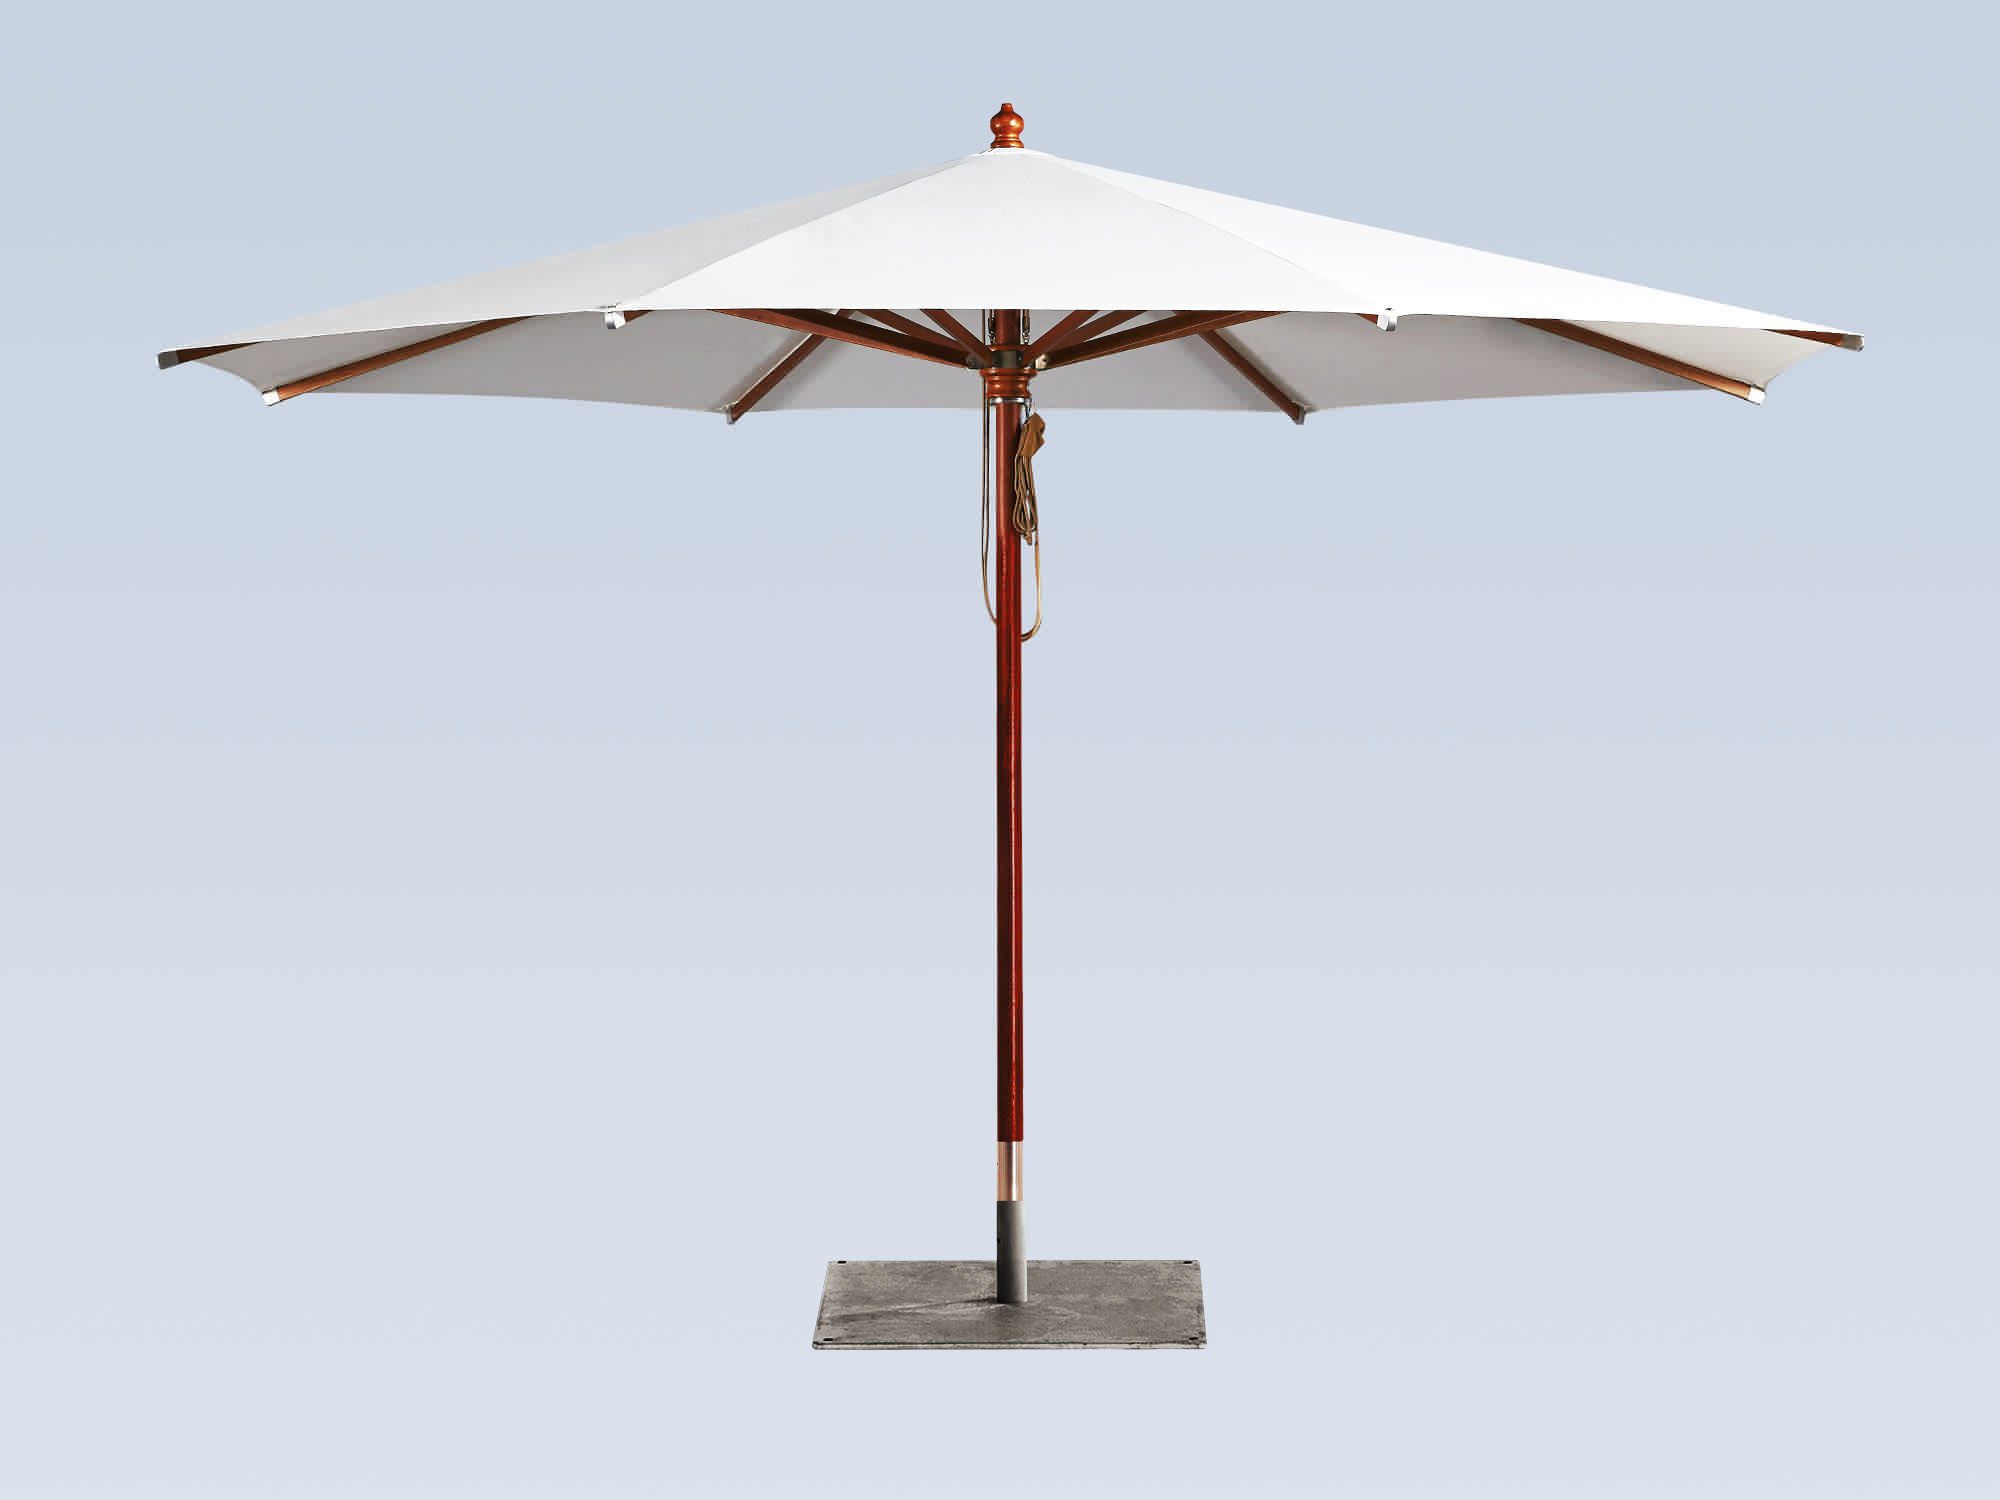 Commercial Patio Umbrella / Fabric / Wooden H MDT ...